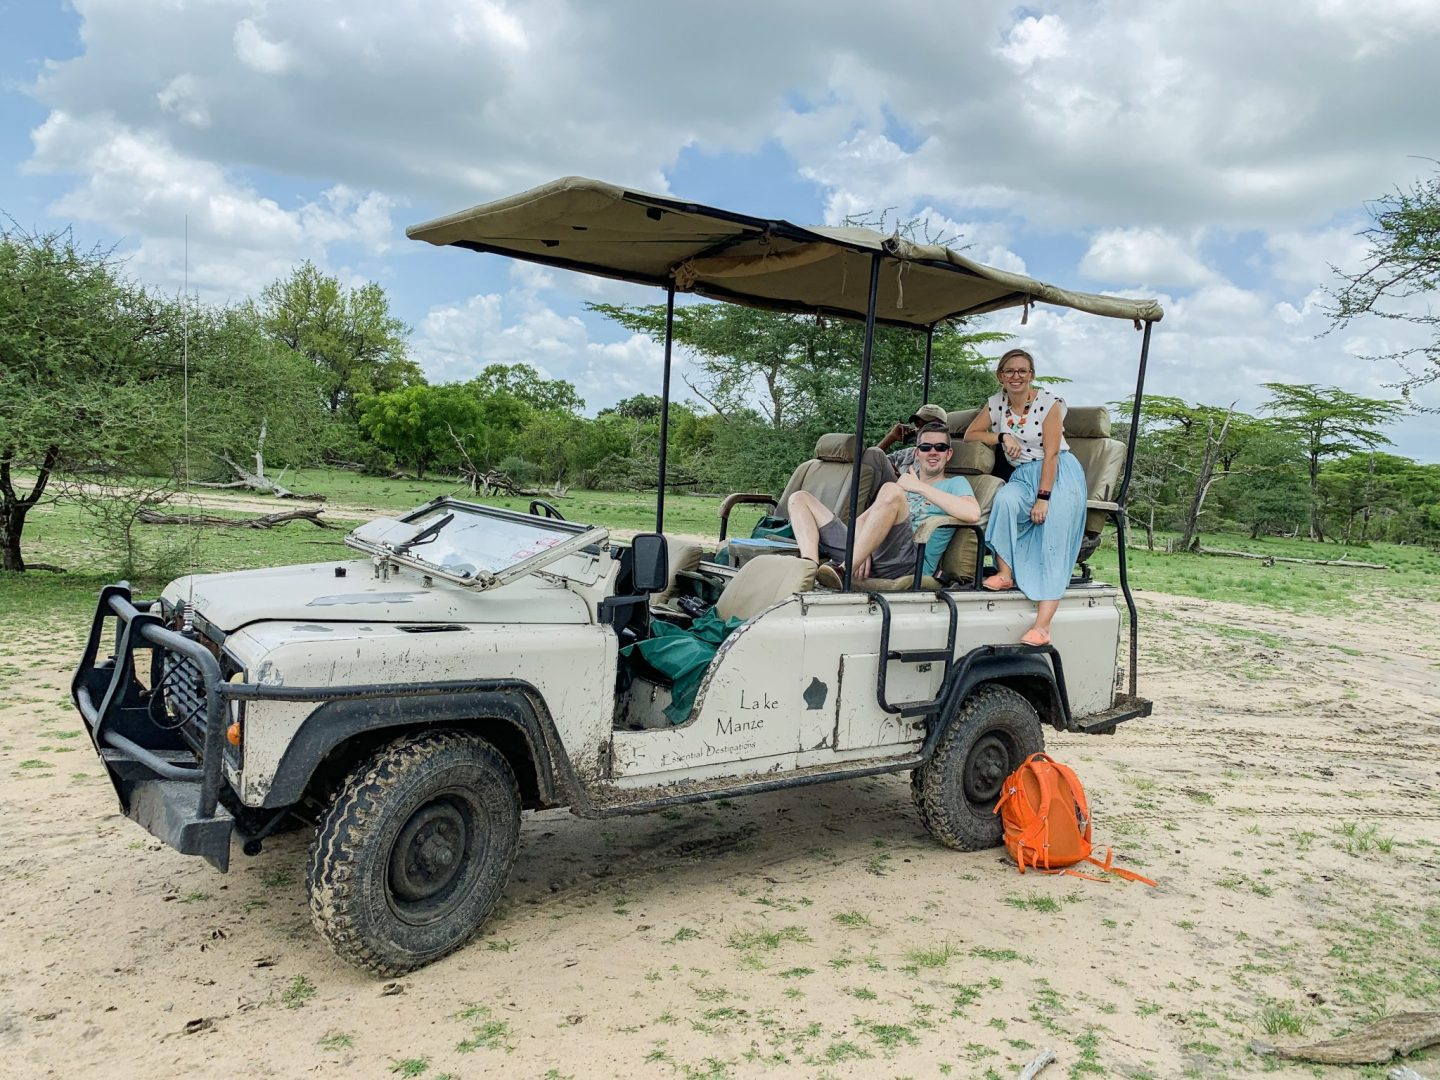 Review: Lake Manze Camp, Selous Game Reserve